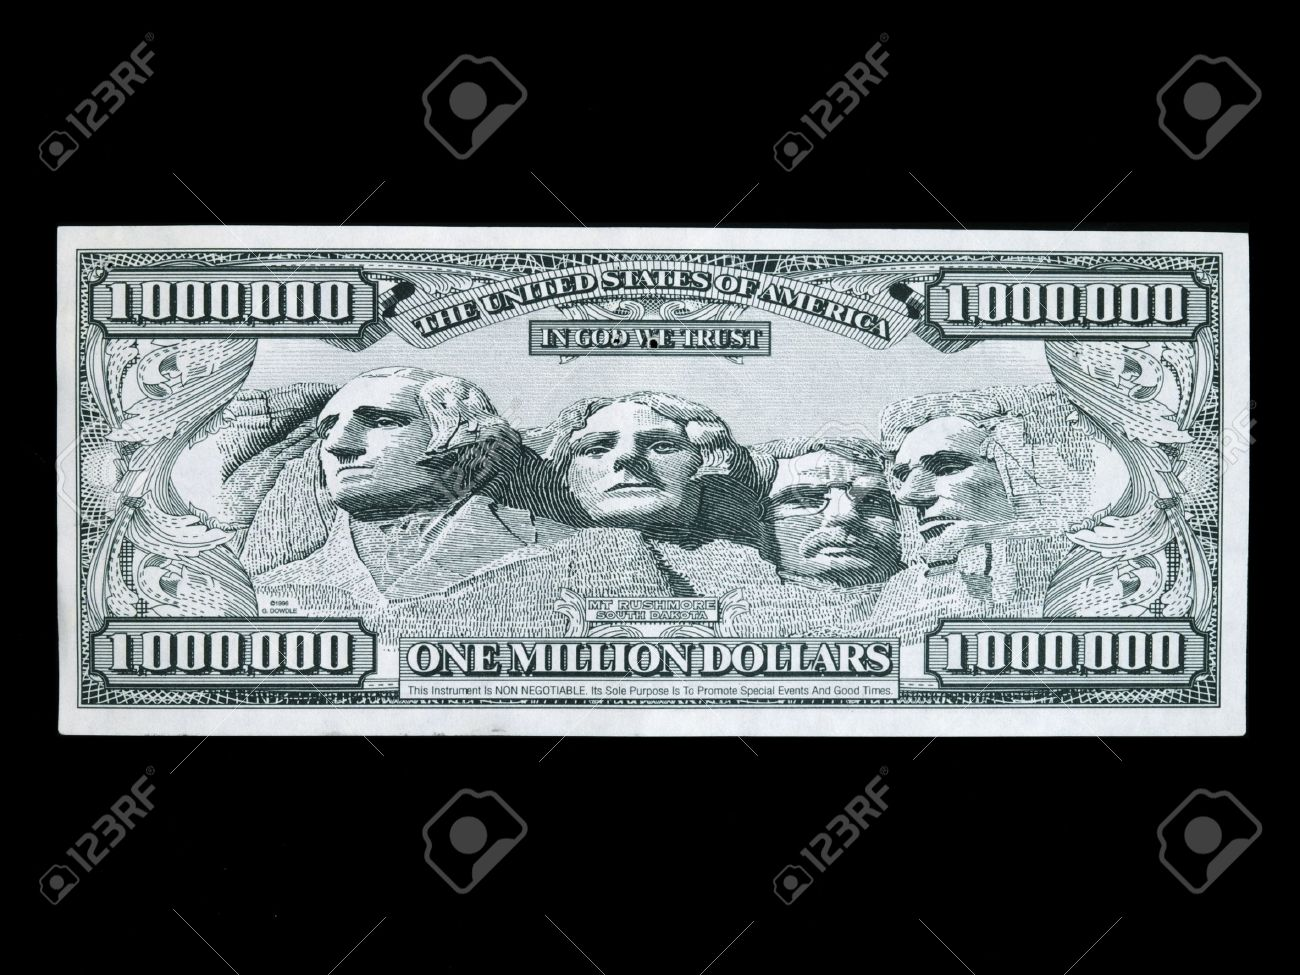 photo regarding Fake 1000 Dollar Bill Printable referred to as untrue one particular million greenback invoice